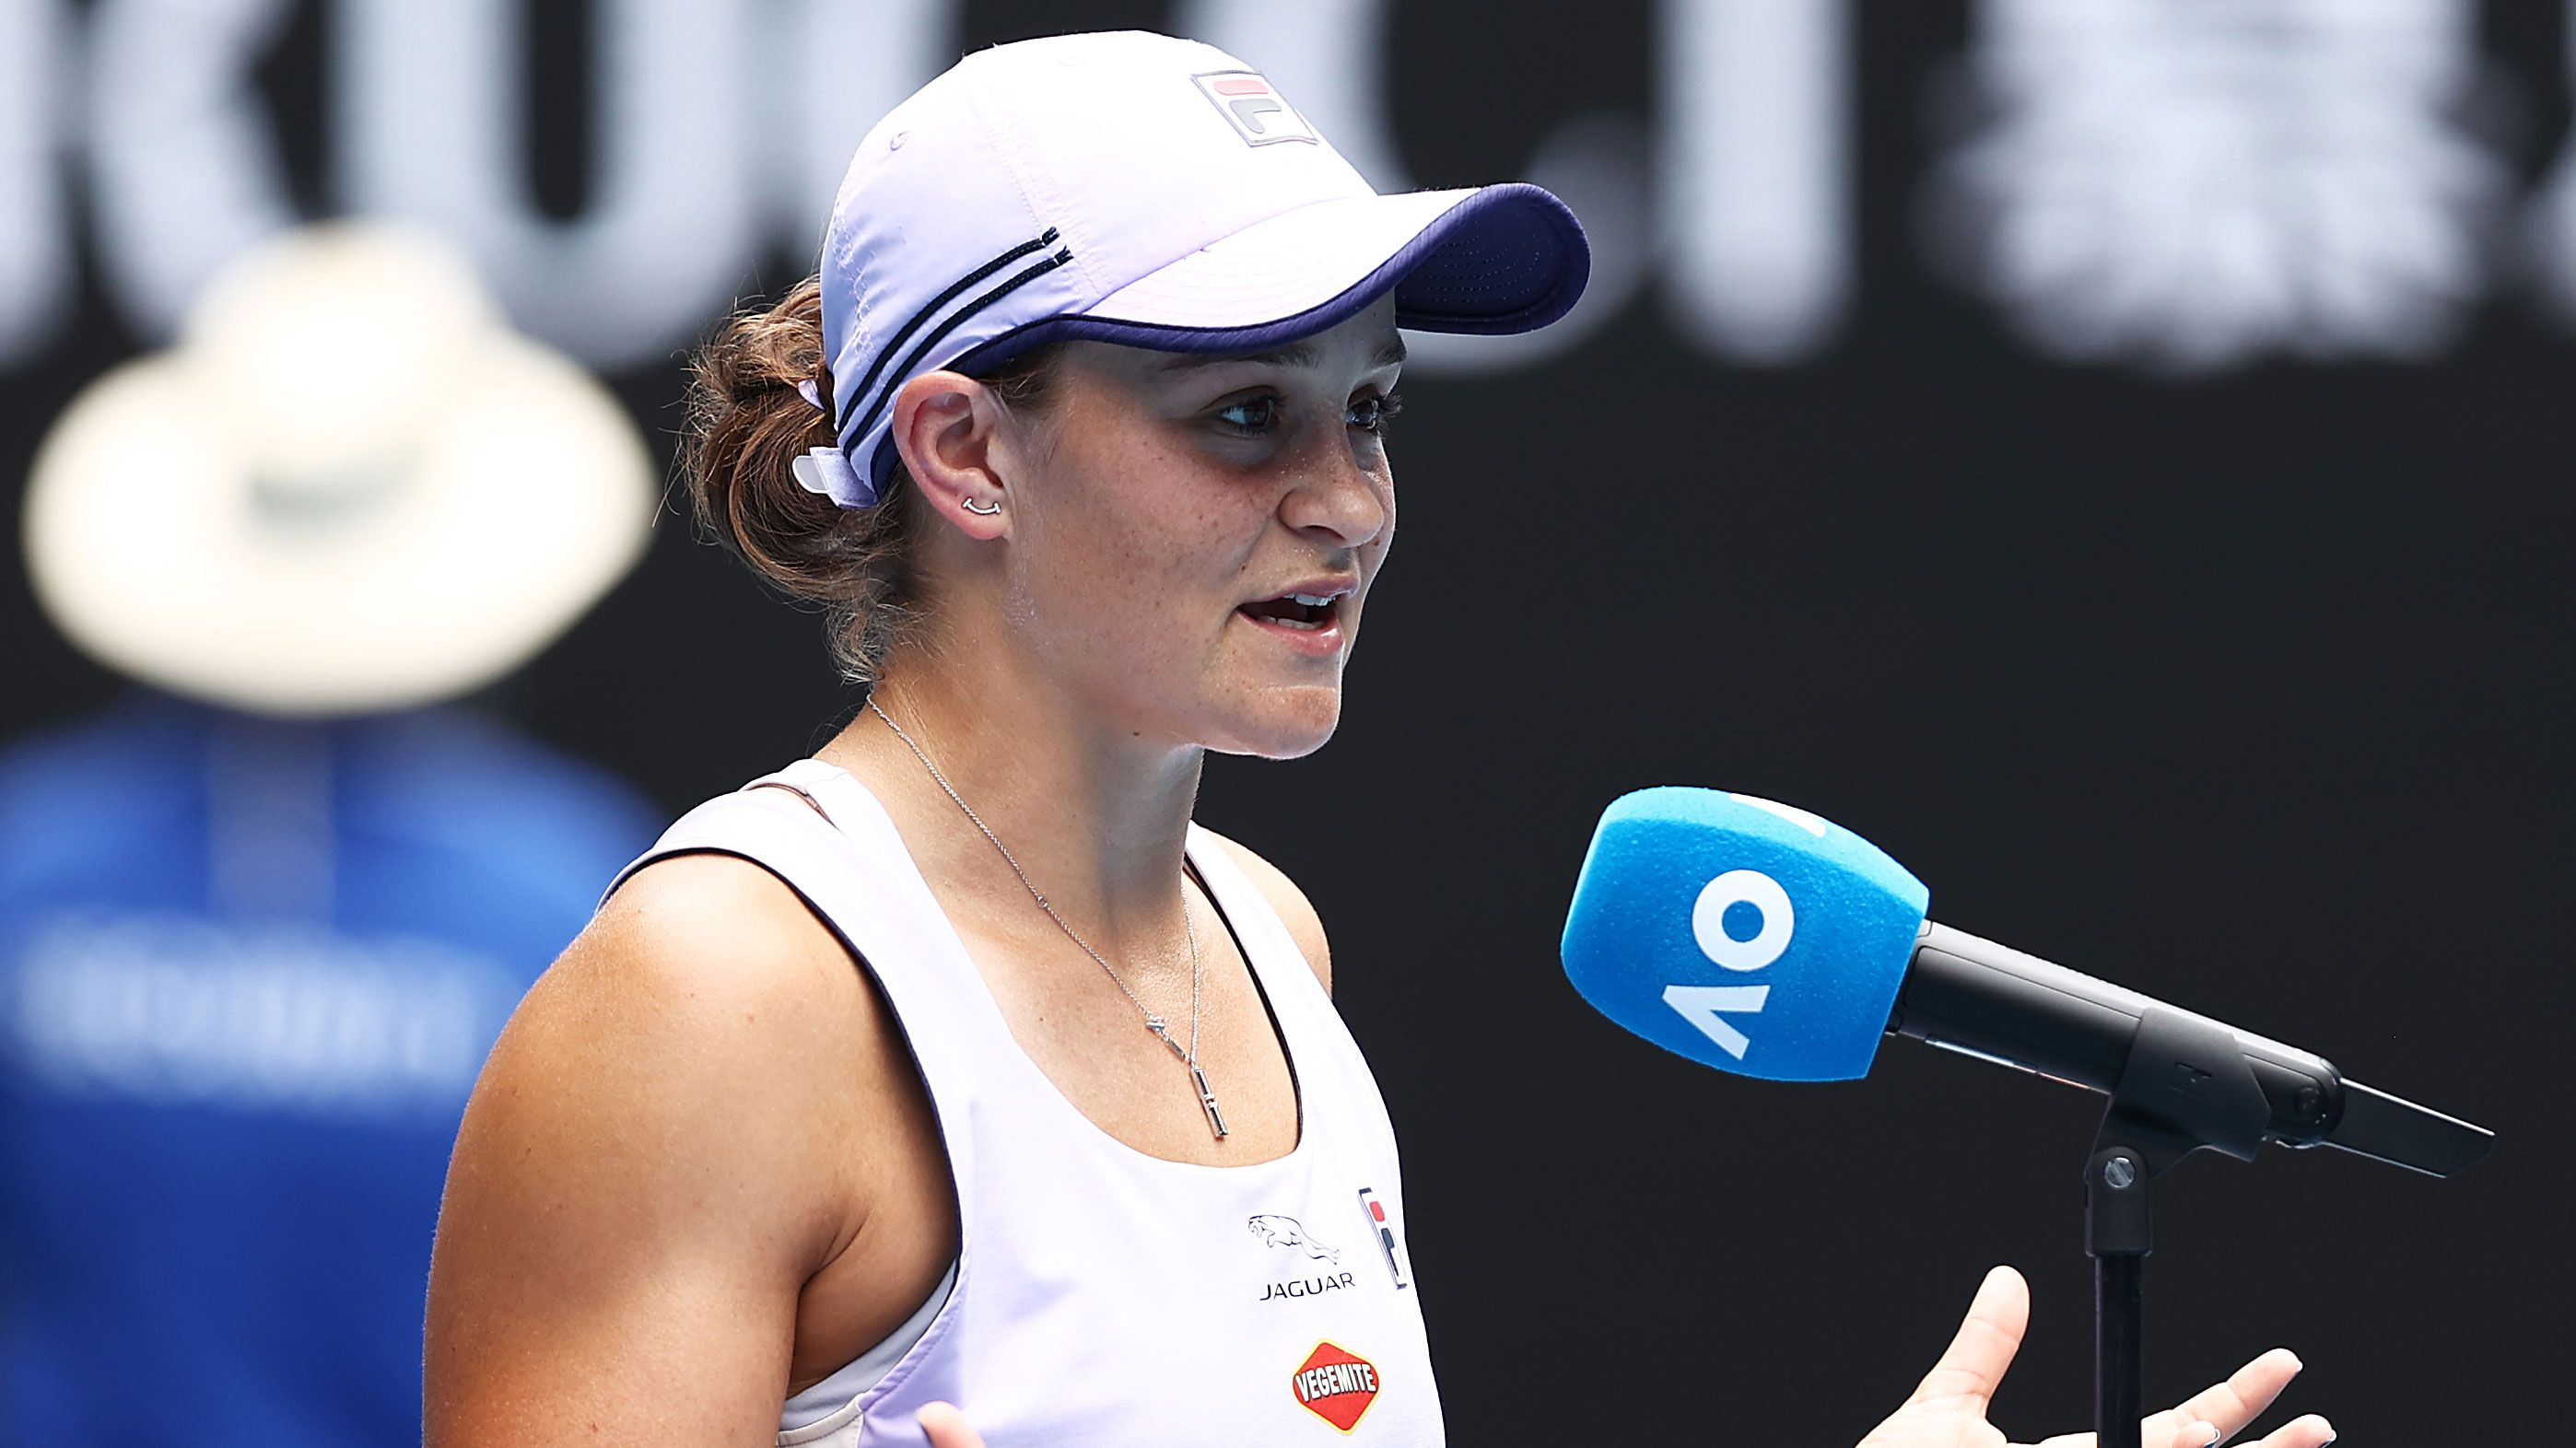 Ash Barty makes a joke with the crowd after her second round win over Daria Gavrilova.